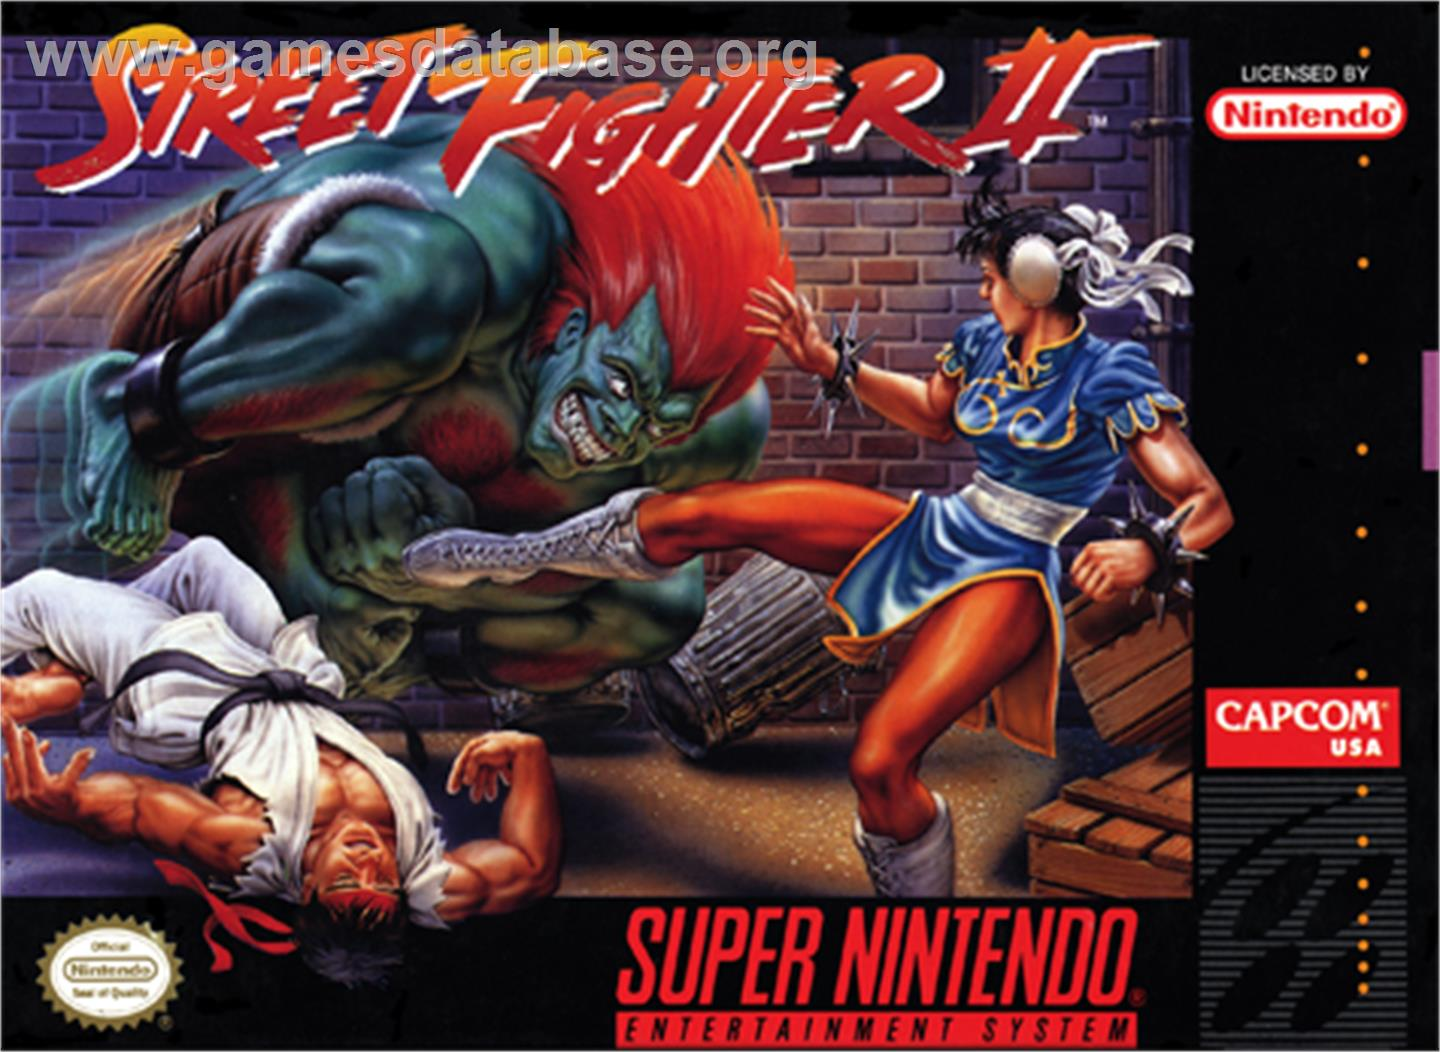 Street Fighter II: The World Warrior - Nintendo SNES - Artwork - Box